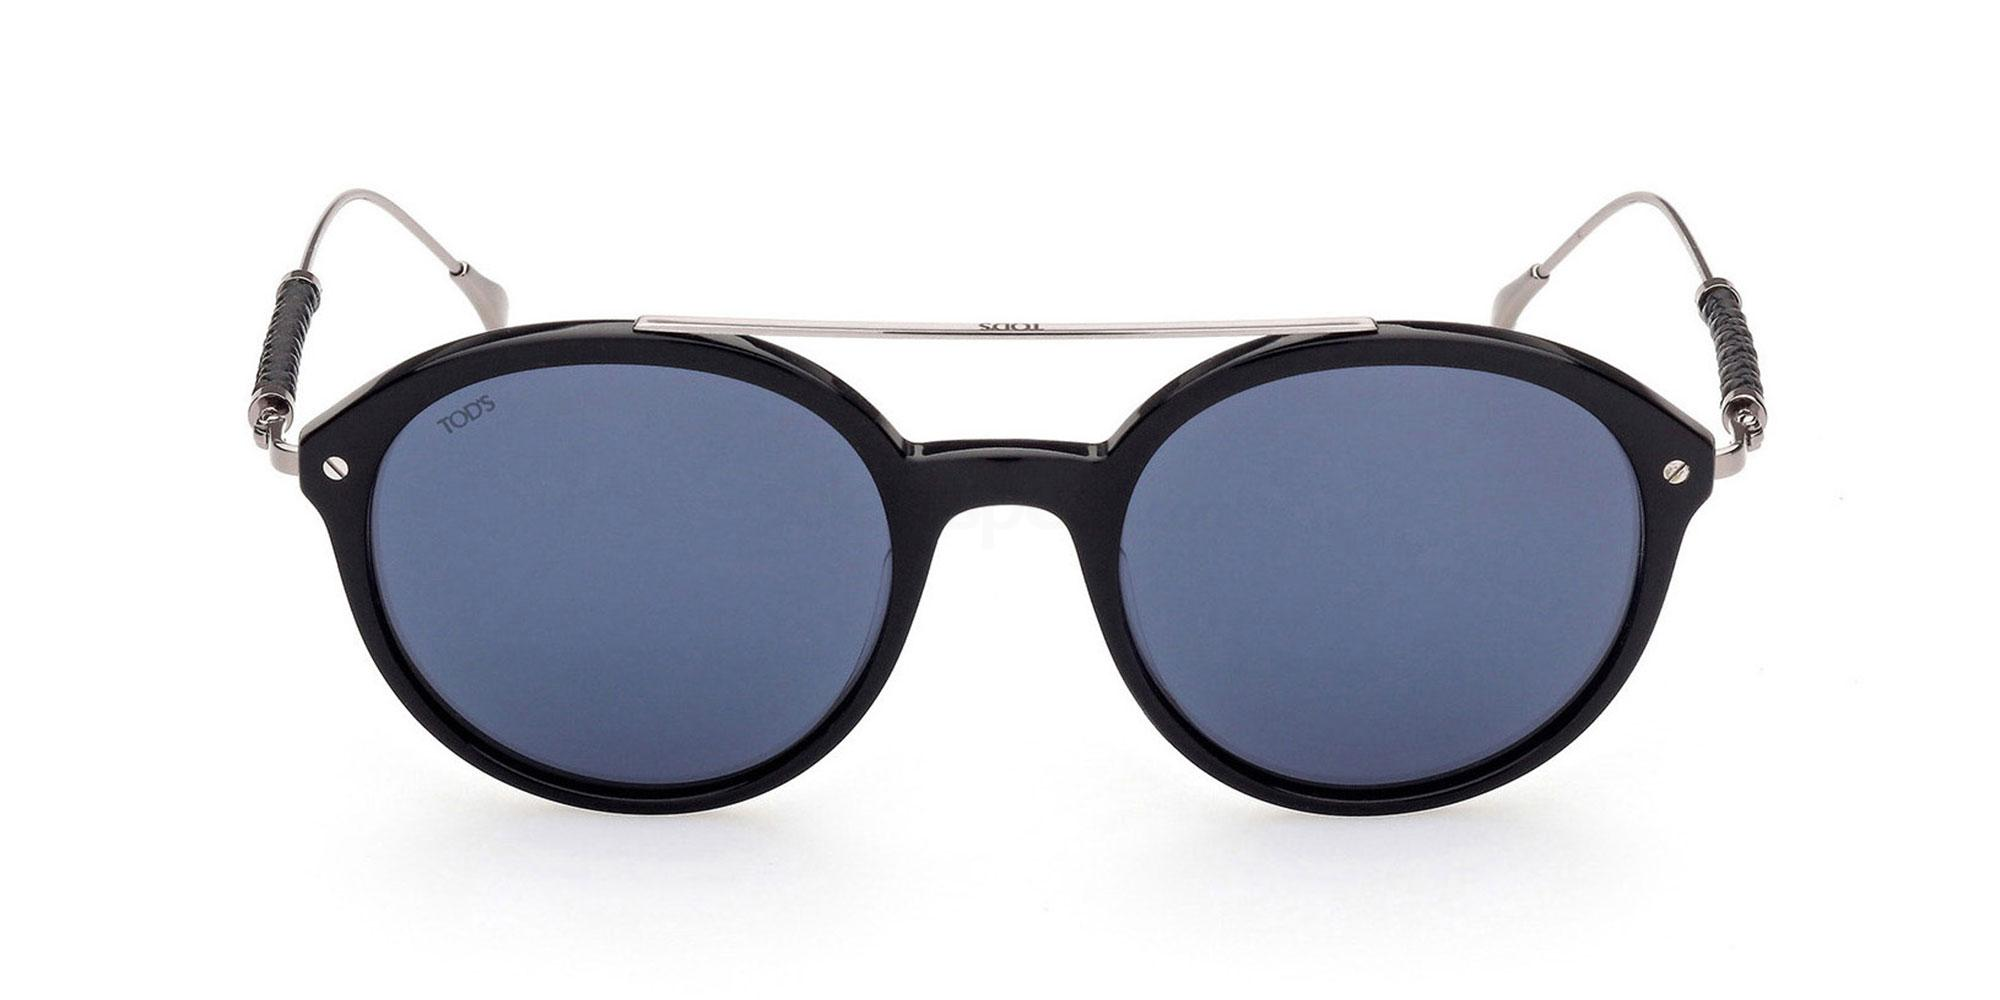 01X TO0285 Sunglasses, TODS